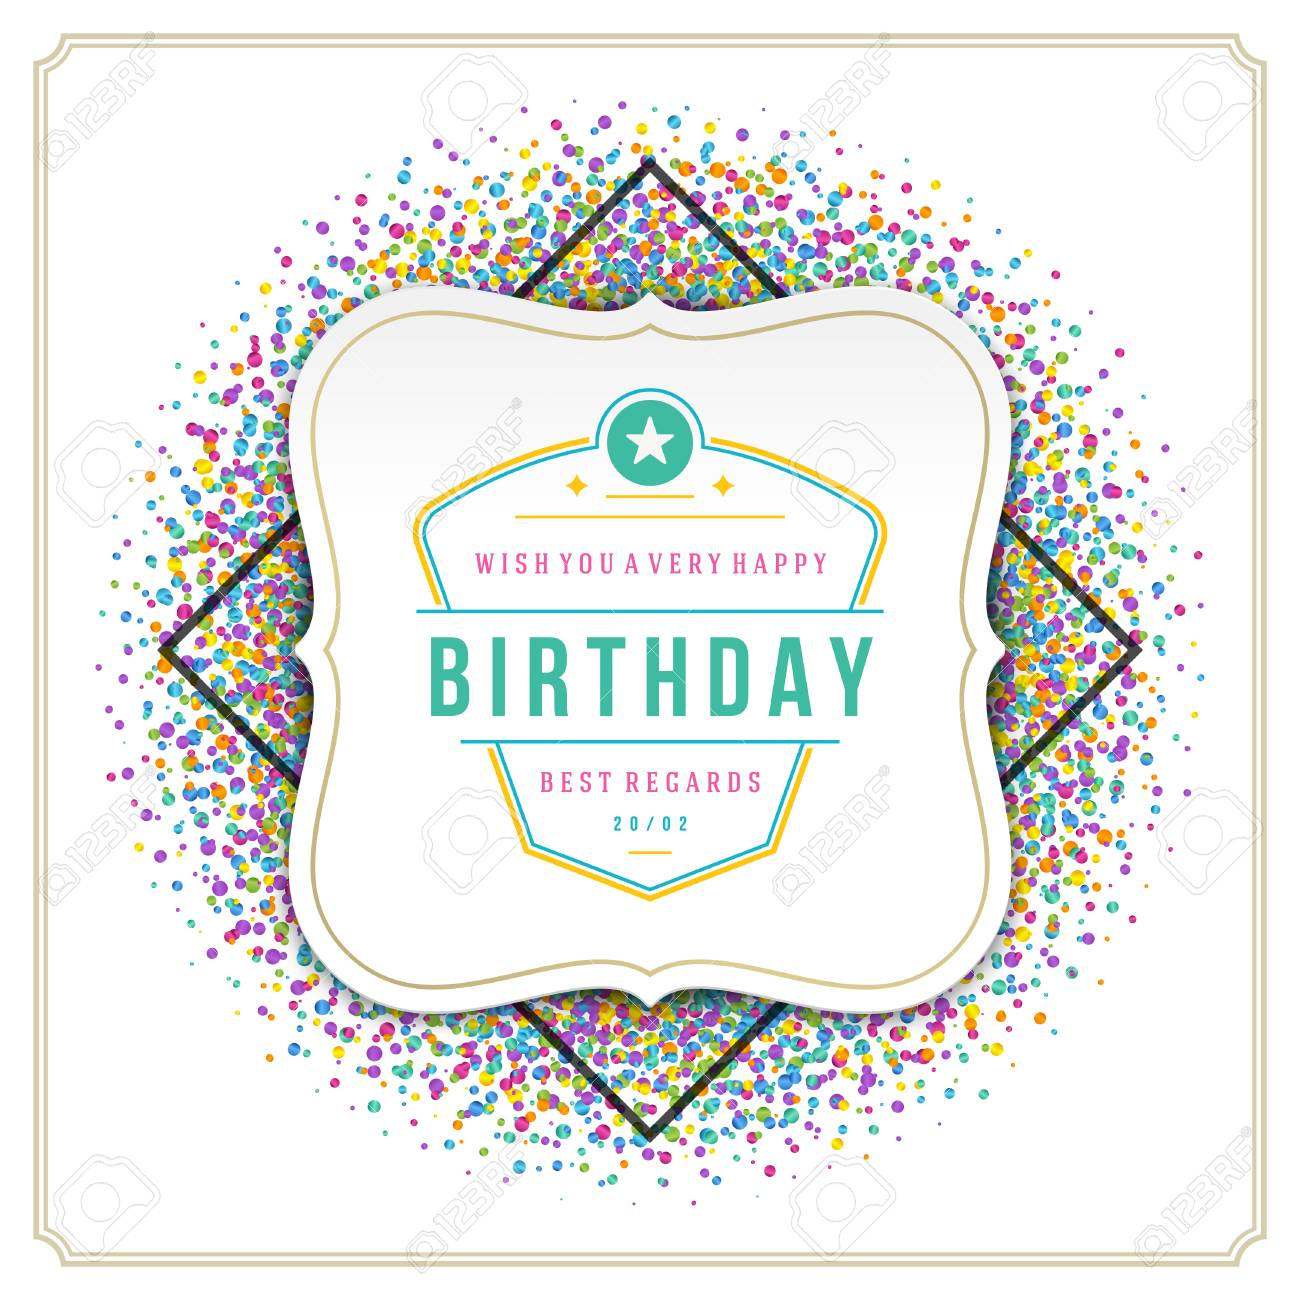 happy birthday greeting card design vector template. vintage